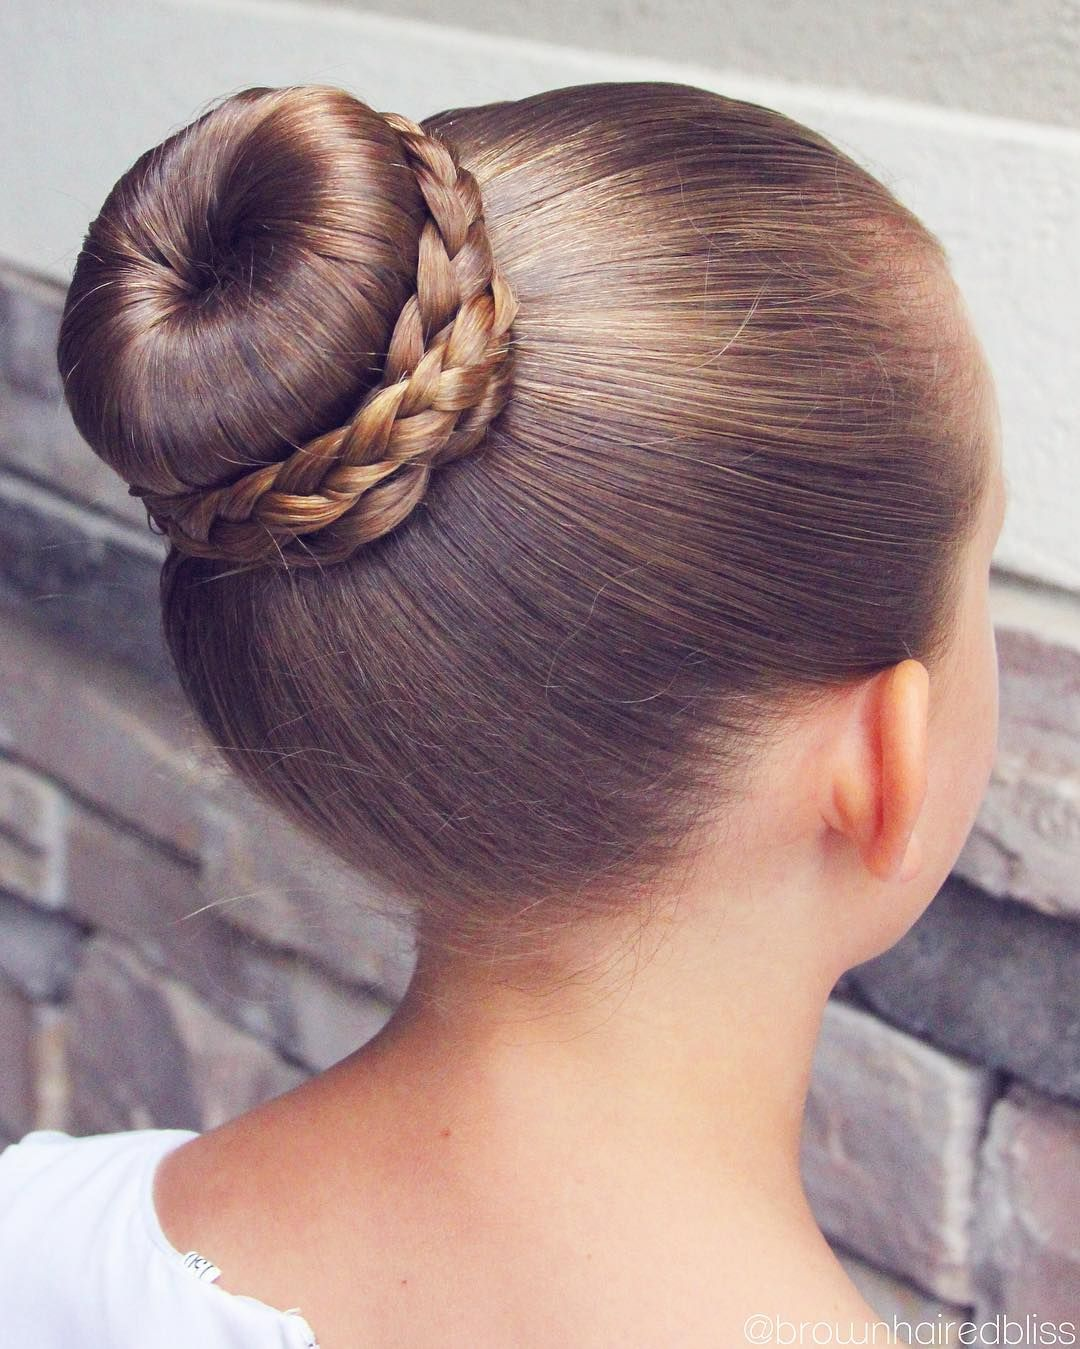 hair bun styles ballet bun with braids wrapped around acro for kayli 6874